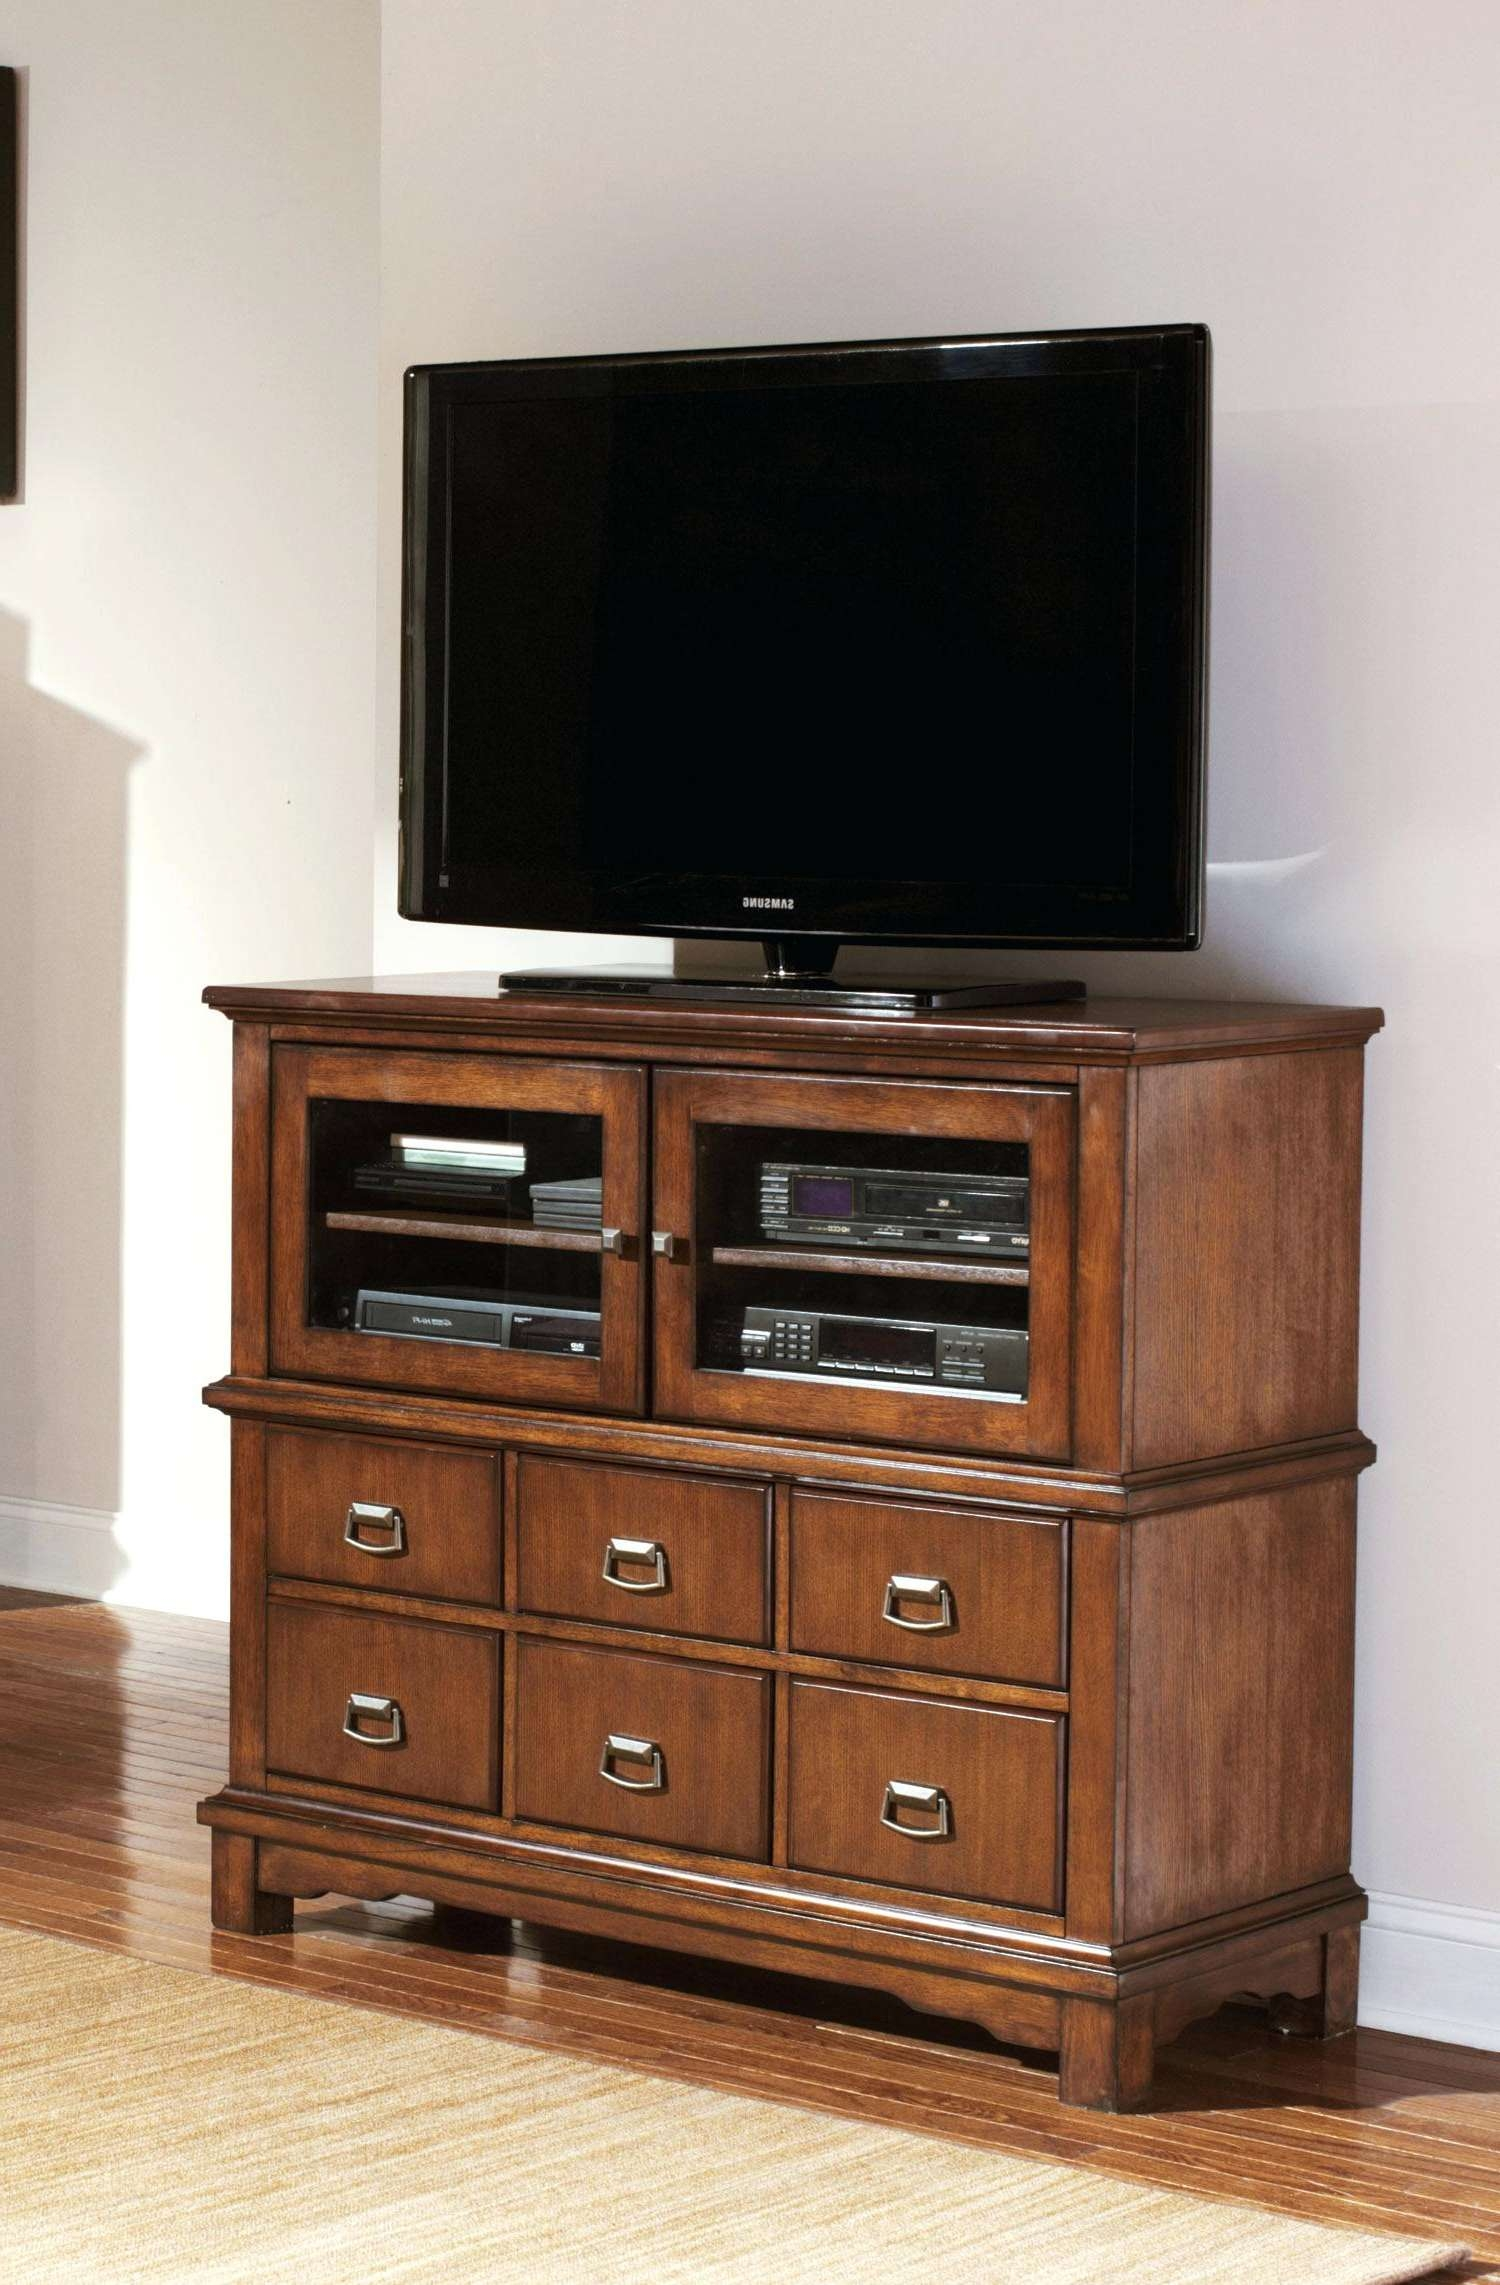 Tall Corner Media Stands Cabinet Espresso Storage Glass Door And Intended For Corner Tv Stands With Drawers (View 14 of 15)